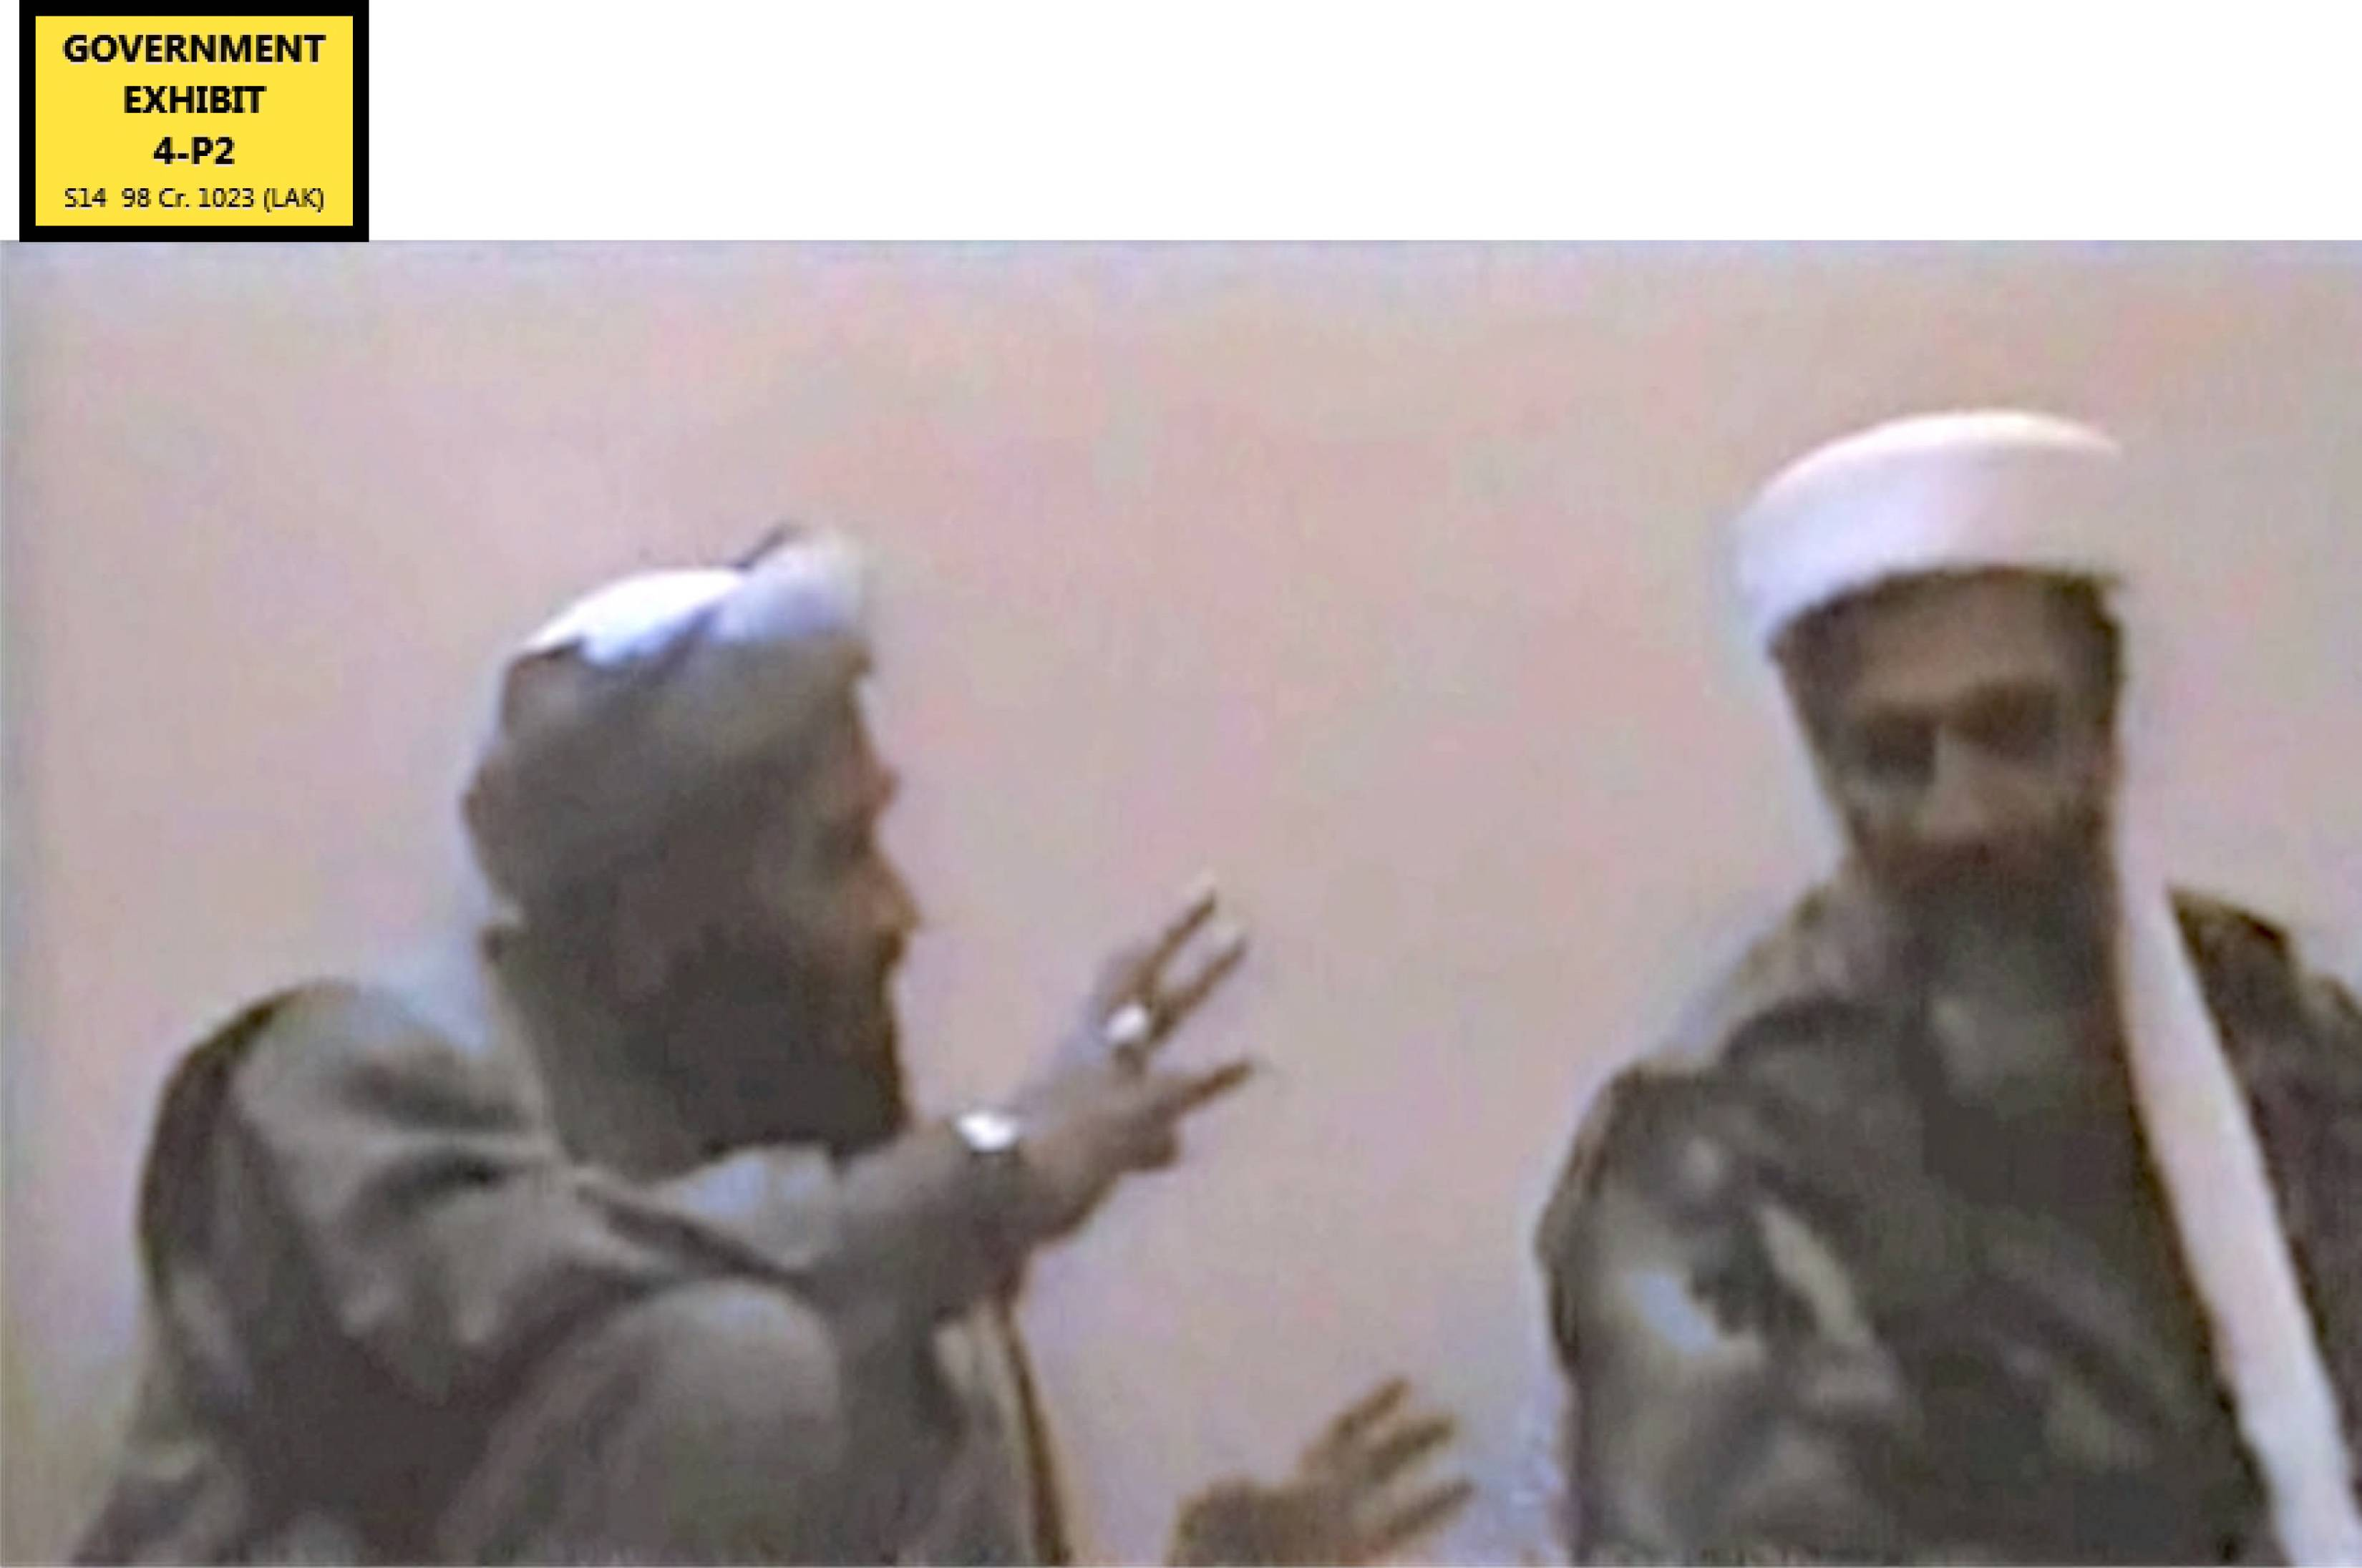 In this undated Photo provided by the United States Attorney's Office for the Southern District of New York, defendant Suliman Abu Ghayth, left, gestures toward al-Qaida founder Osama bin Laden, in a room somewhere in Afghanistan. Abu Ghayth, Bin Laden's son-in-law, is being tried in New York for plotting to kill Americans by being a motivational speaker at al-Qaida training camps before the Sept. 11 attacks.